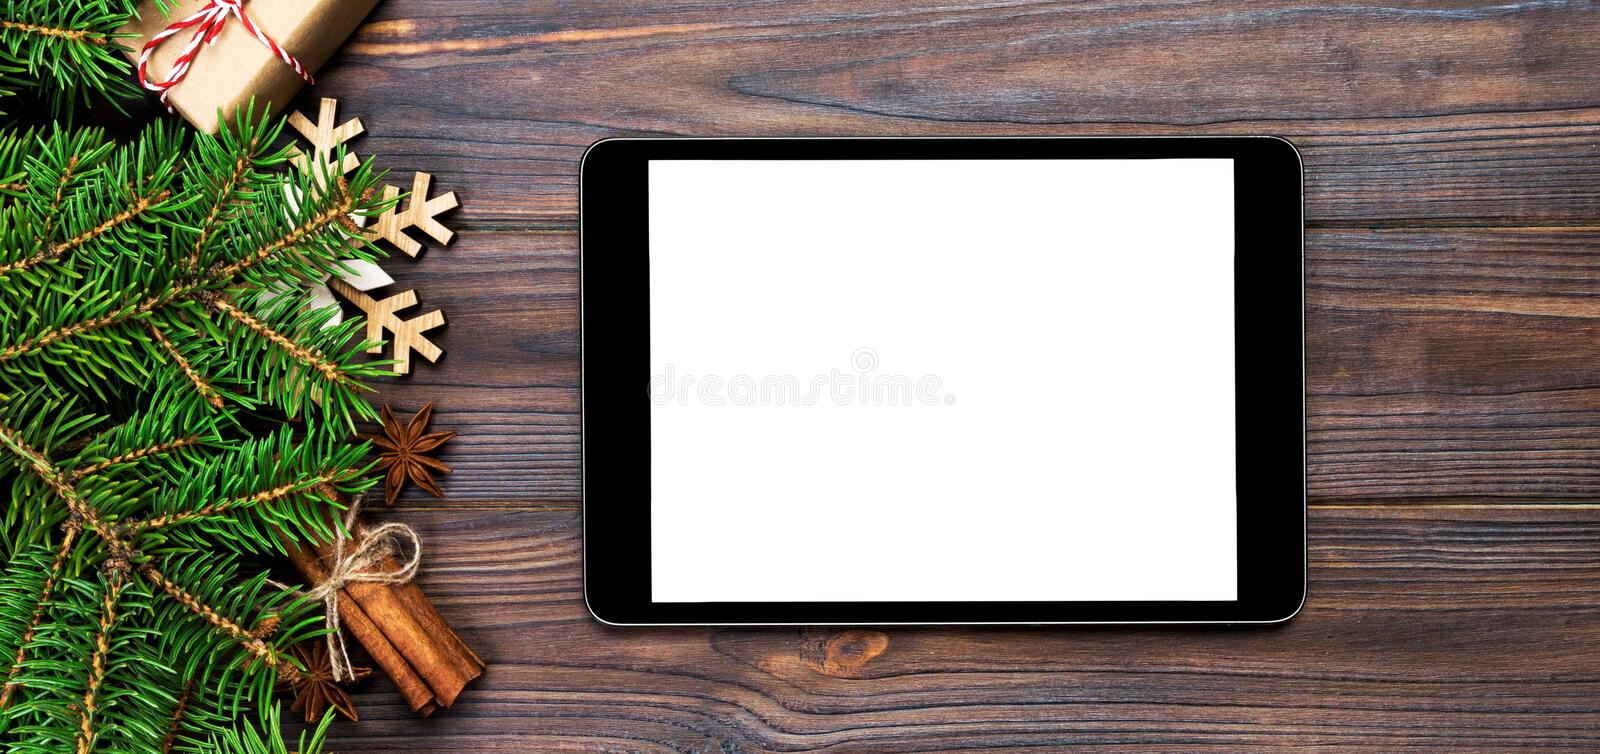 Digital tablet mock up with rustic Christmas wood background decorations for app presentation. top view banner with copy space royalty free stock photos